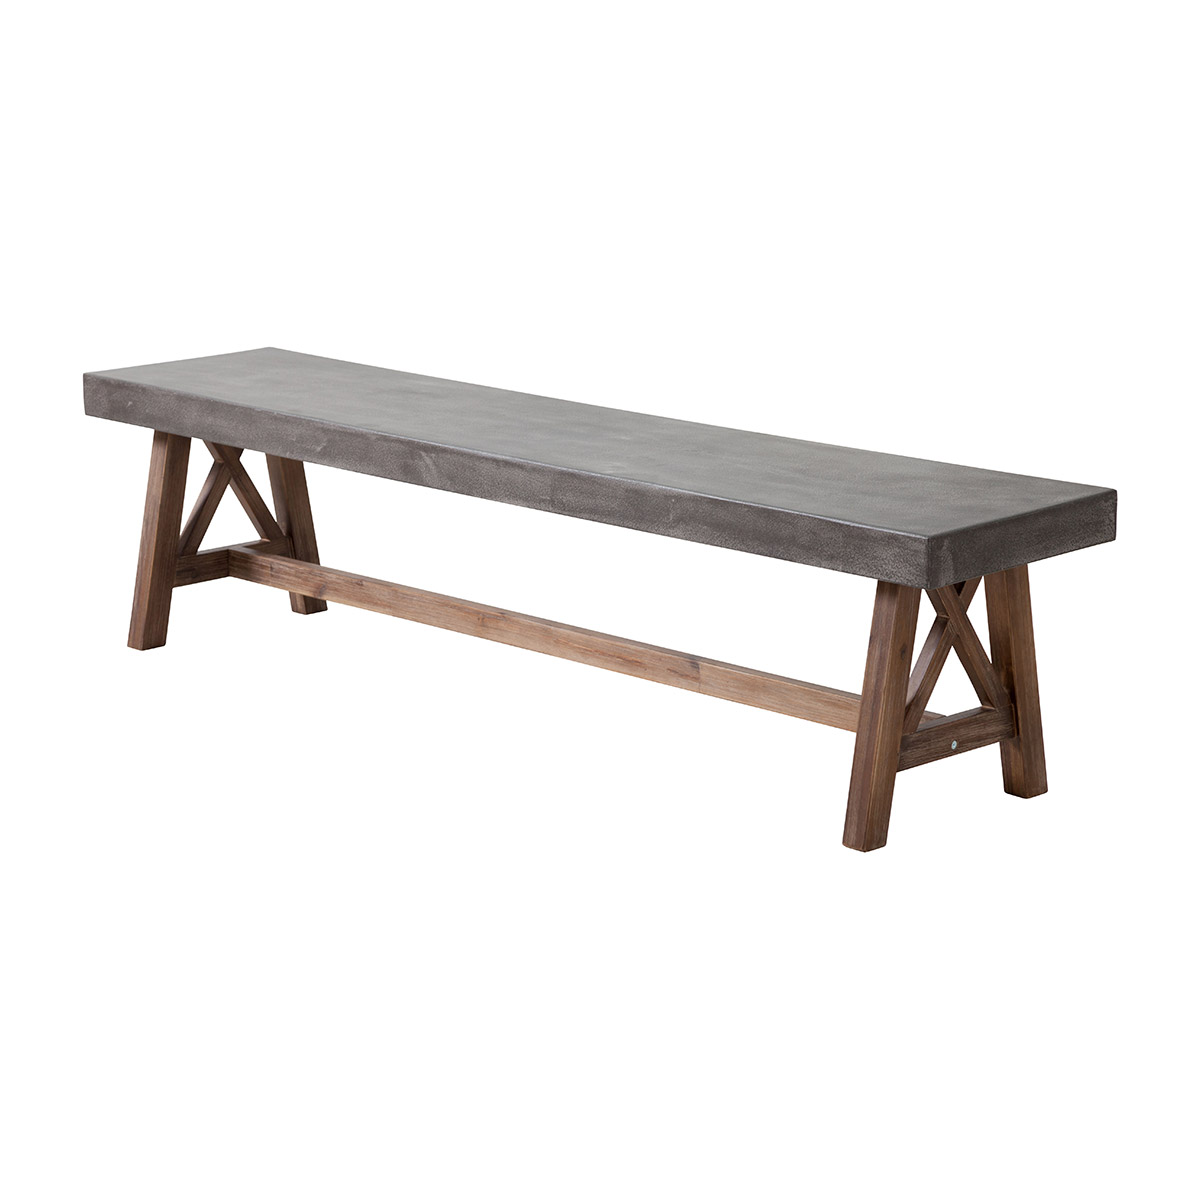 Zuo Ford Patio Bench In Cement Natural Boost Home